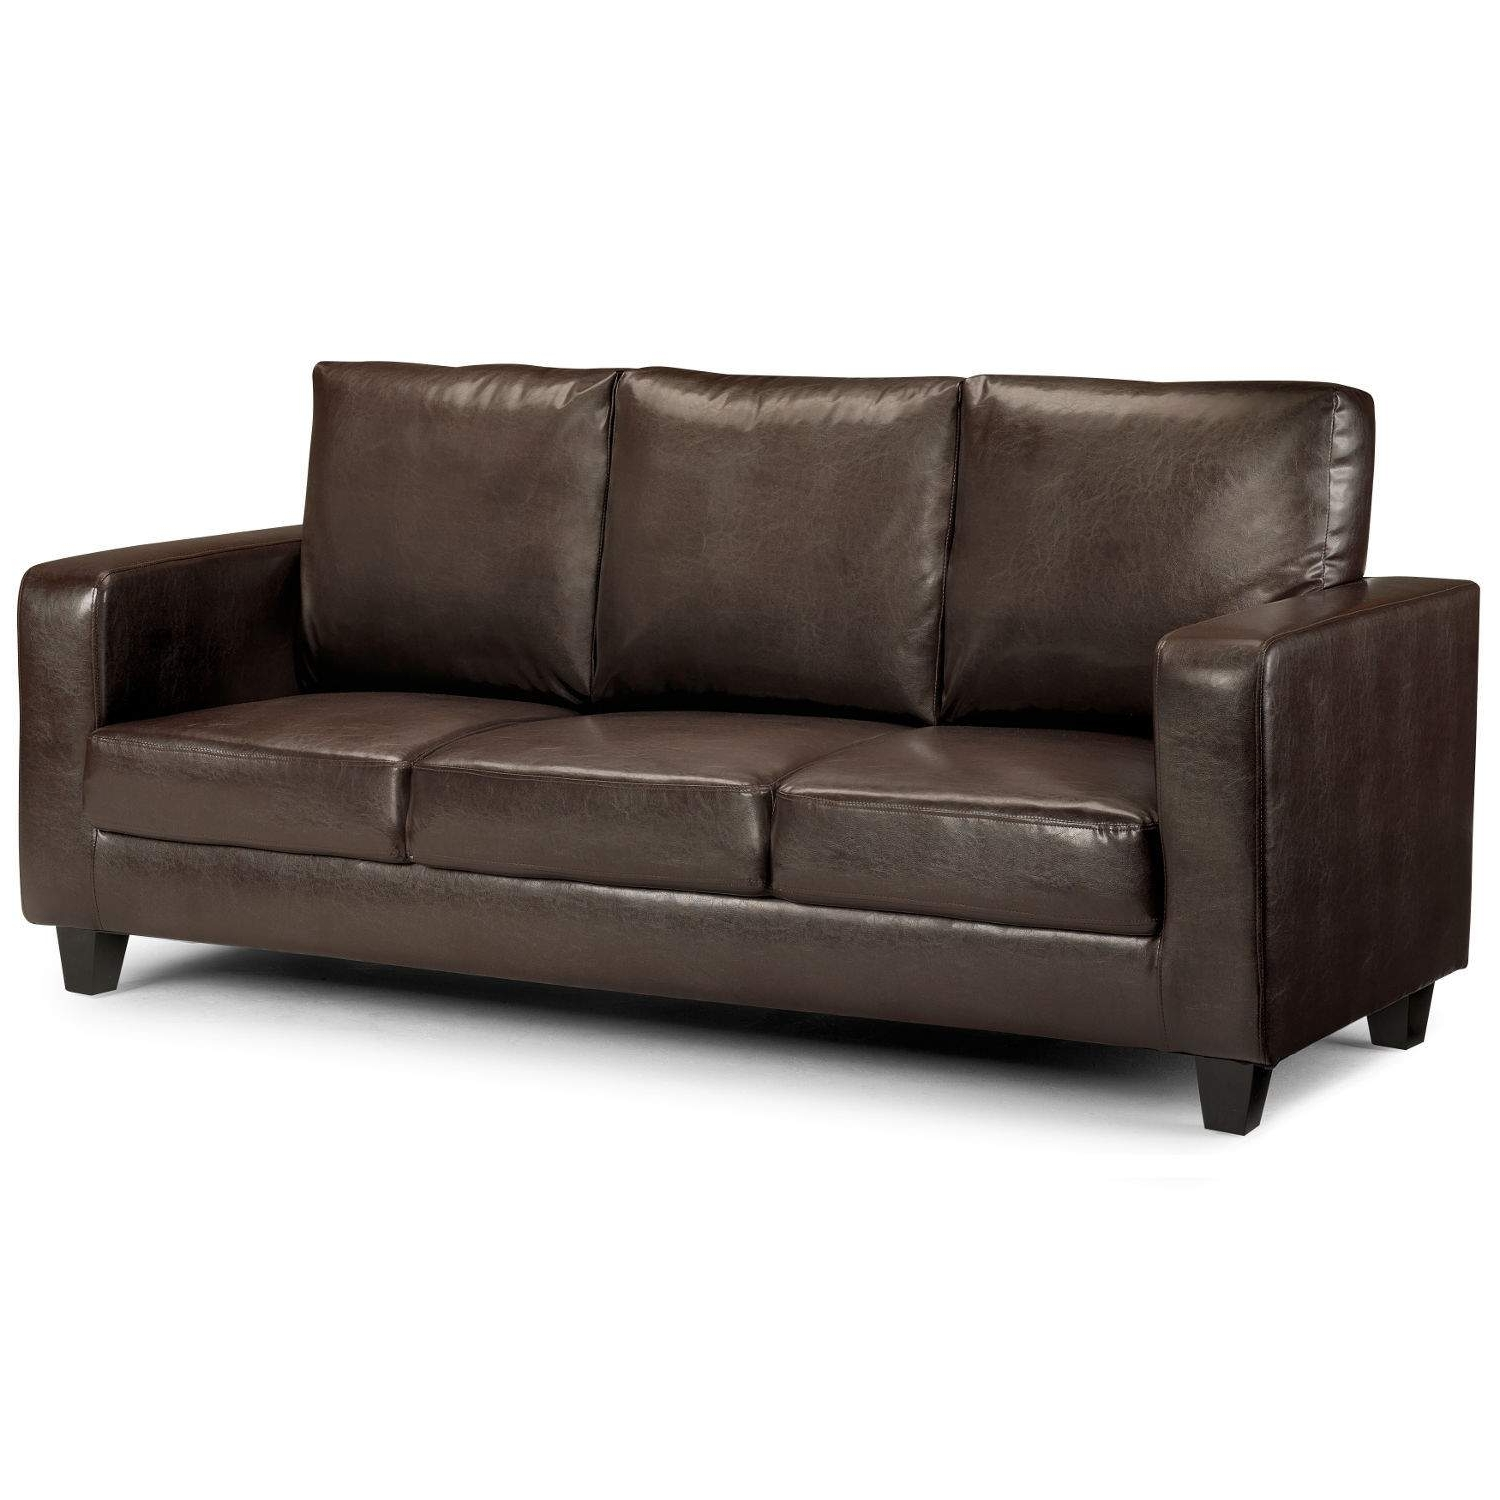 Matthew 3 Seater Faux Leather Sofa – Next Day Delivery Matthew 3 In Best And Newest 3 Seater Leather Sofas (View 12 of 20)